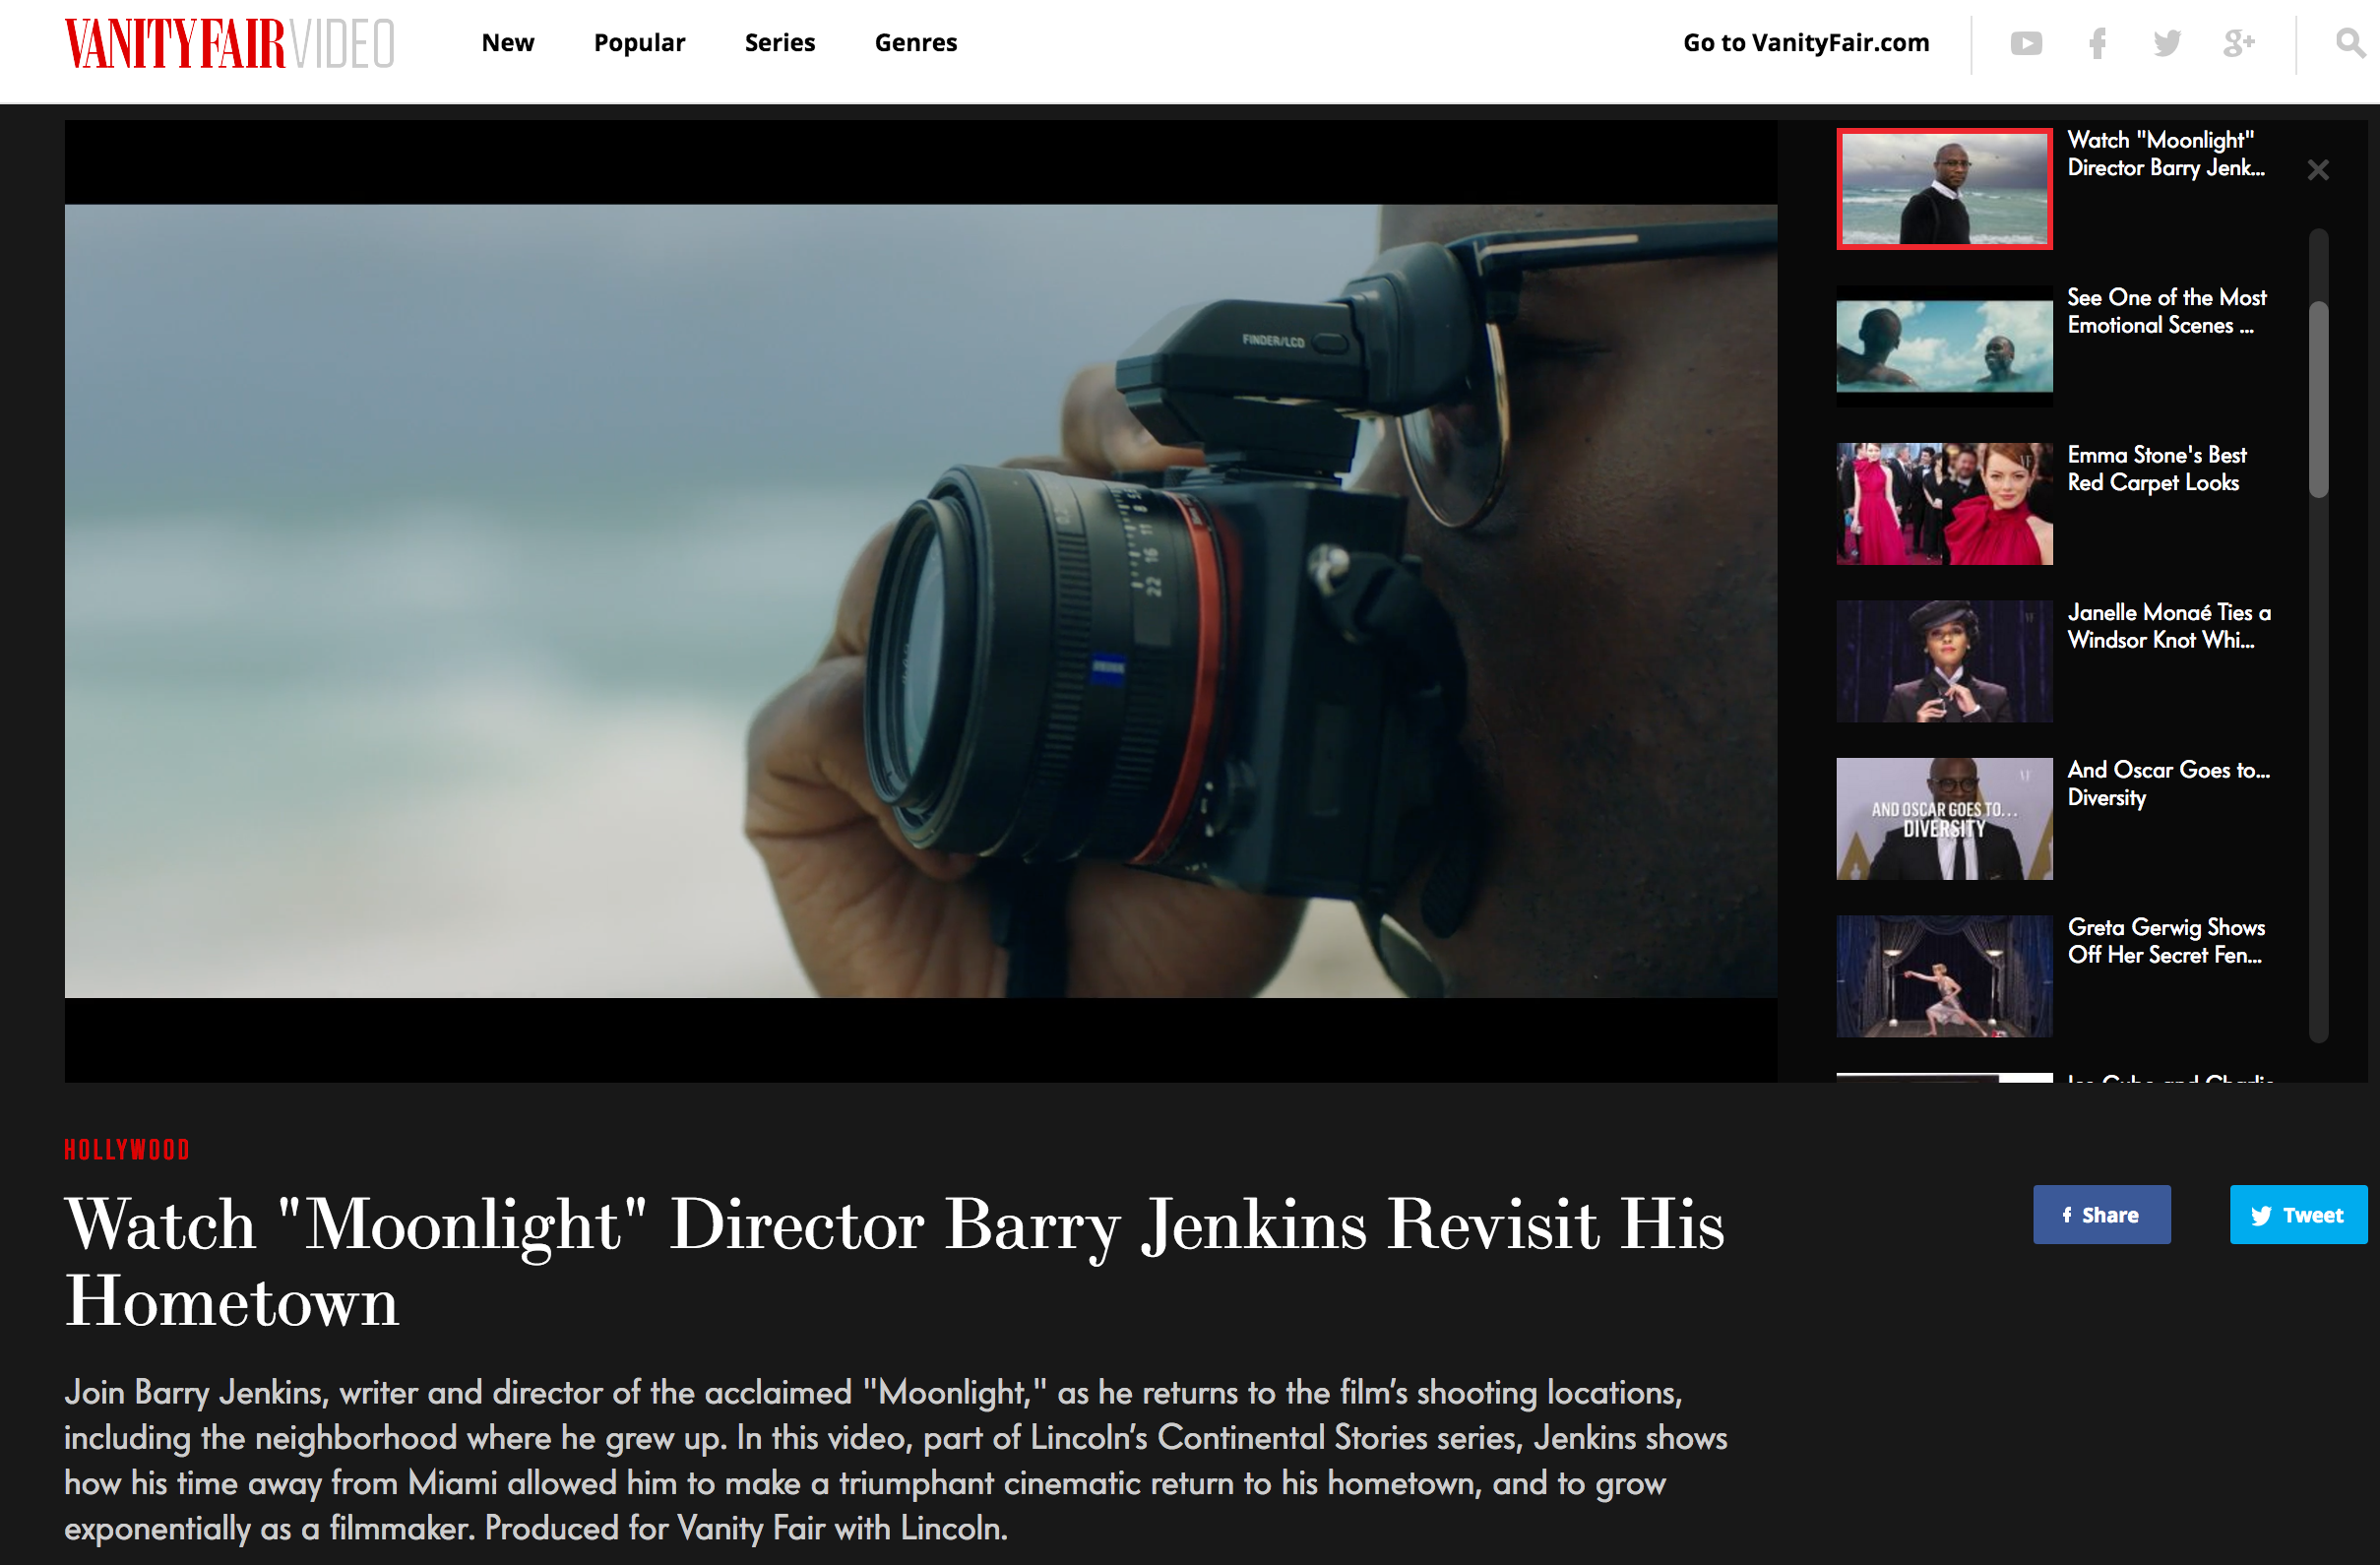 Brand content integrated in Vanity Fair Video online.